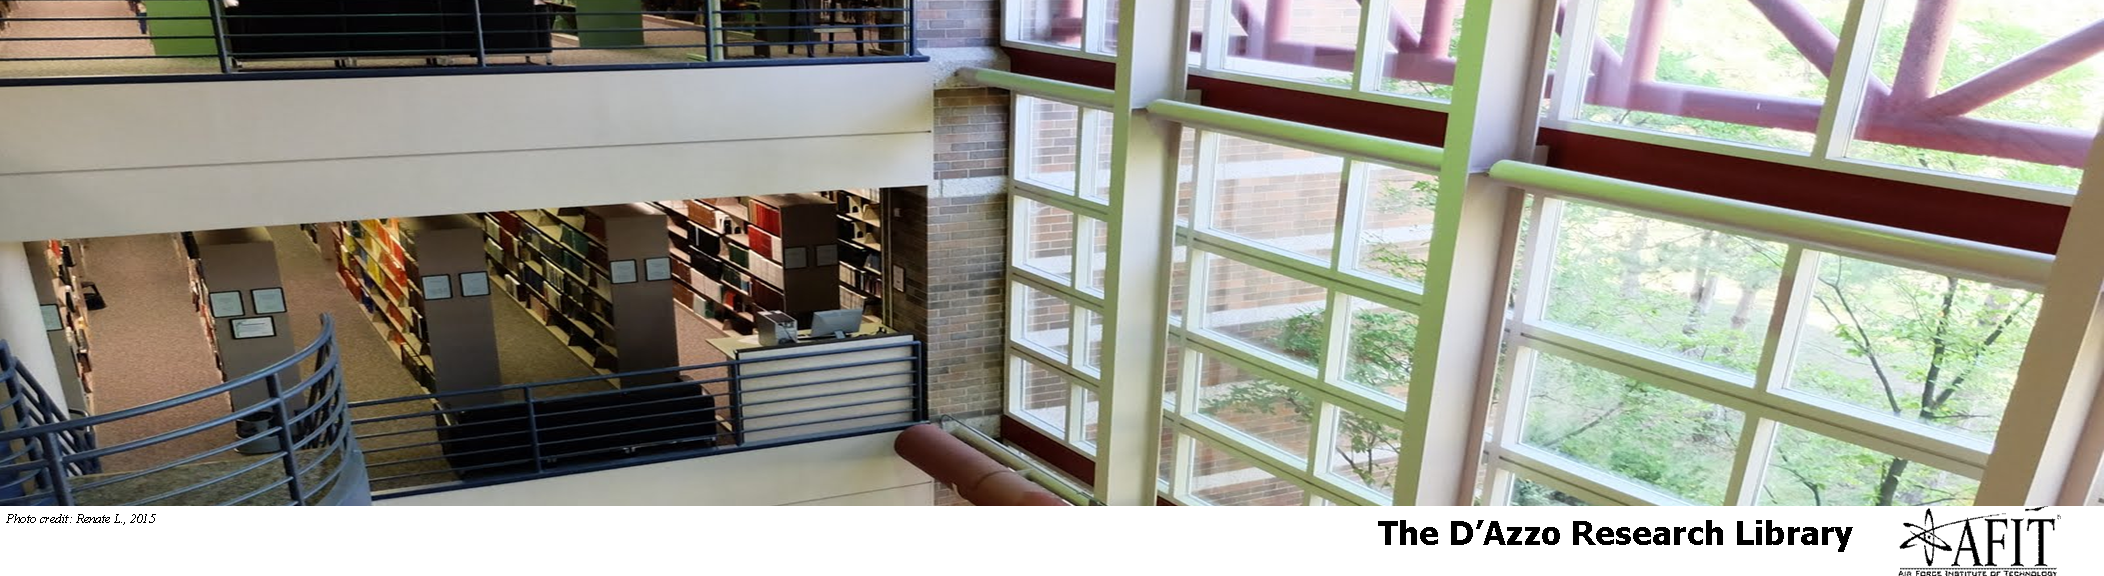 The D'Azzo Research Library at AFIT AFIT Library Events and Spaces